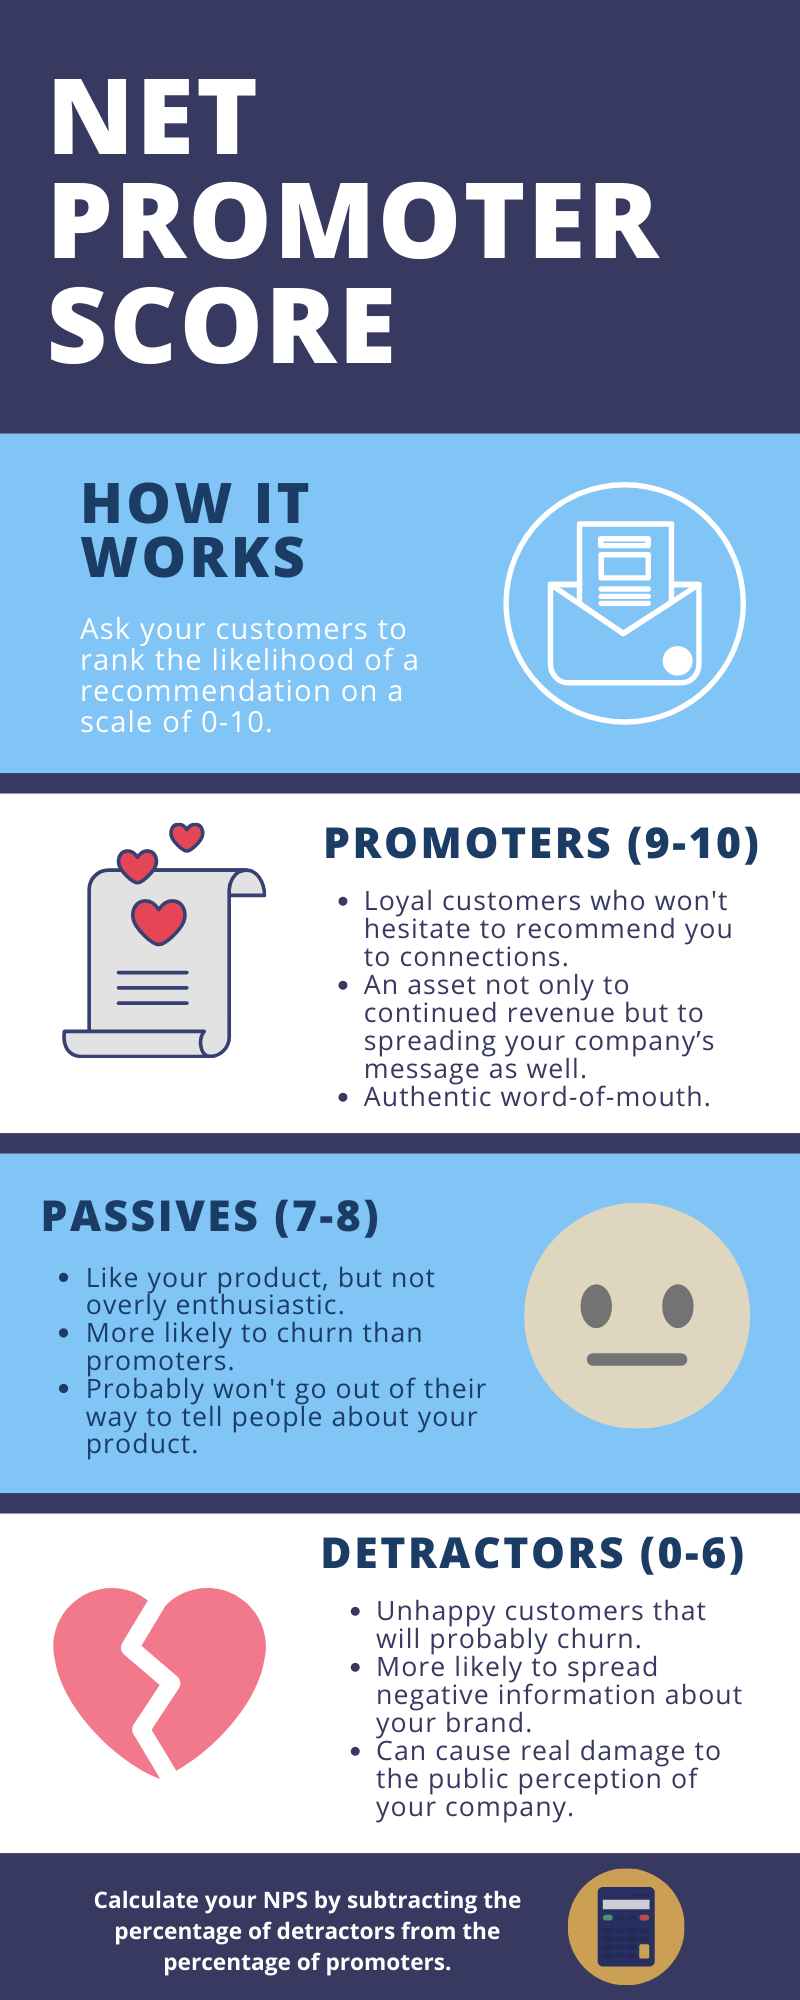 Net Promoter Score - Click to enlarge